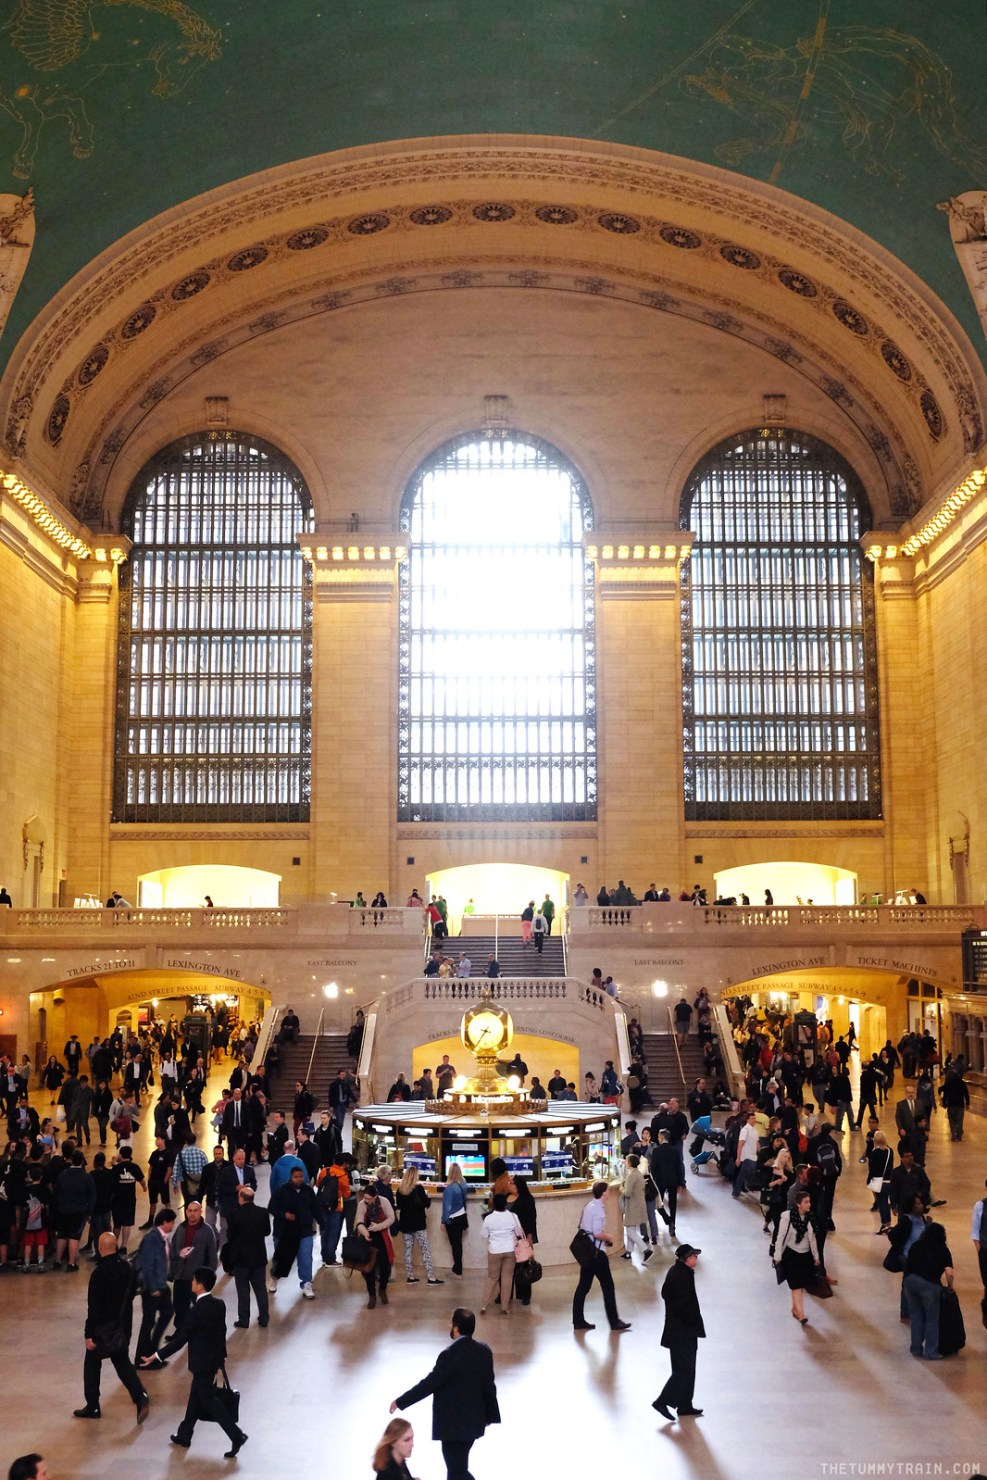 Travel Diary: A feel of the NYC fast life at Grand Central